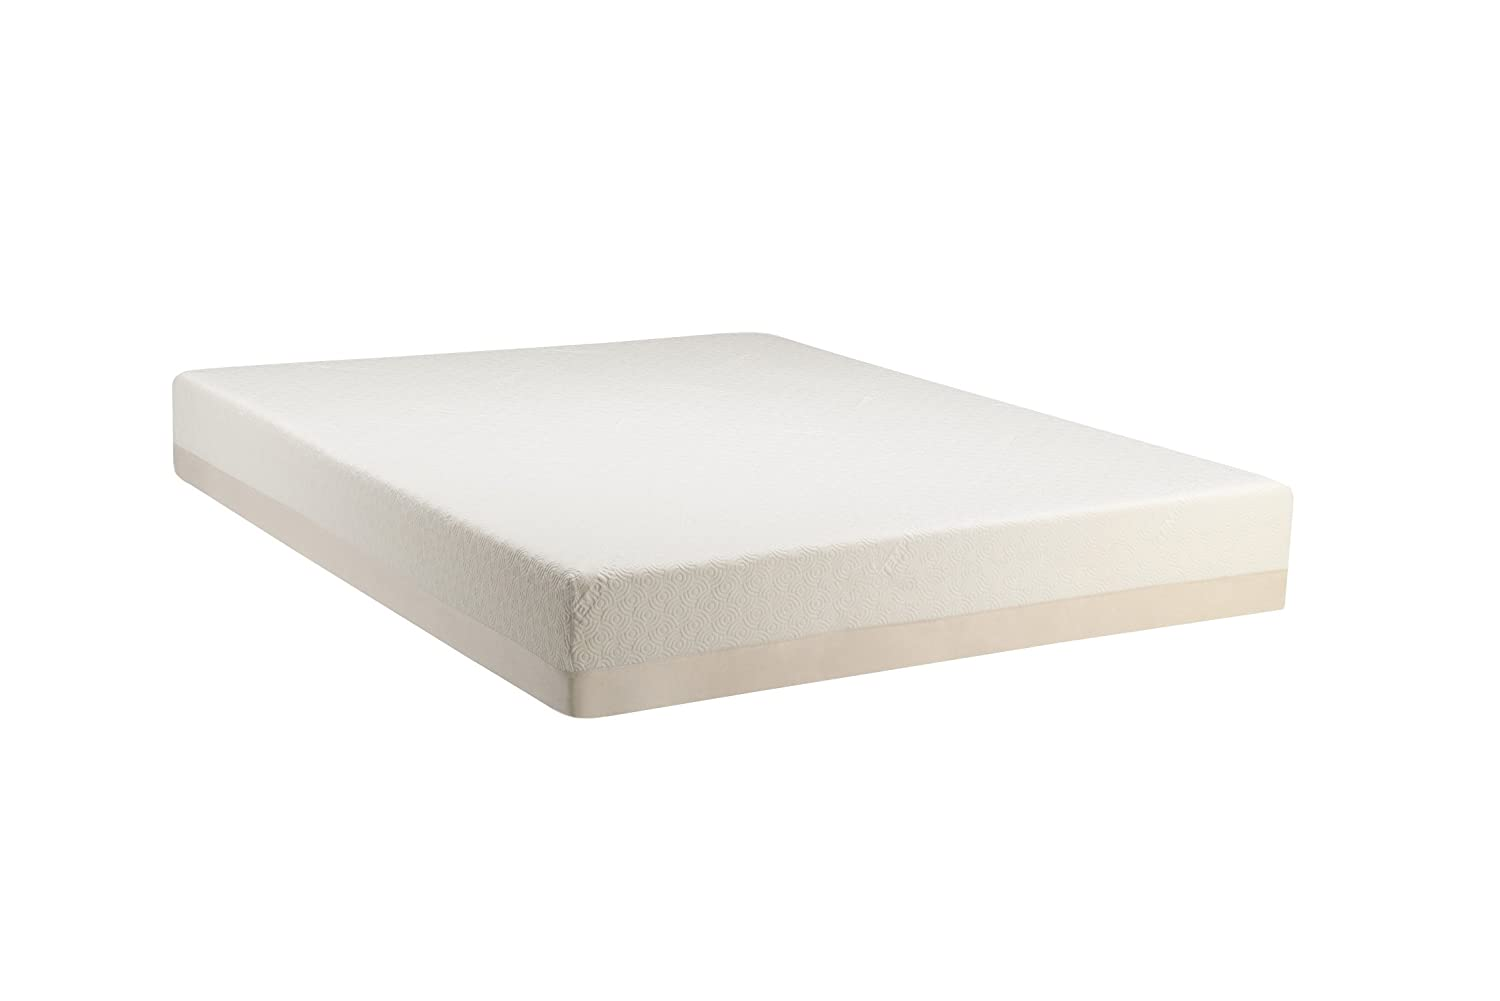 Amazon.com: Tempur-Pedic TEMPUR-Cloud Select 10-Inch Foam Mattress, Twin, Made in USA, 10 Year Warranty: Kitchen & Dining